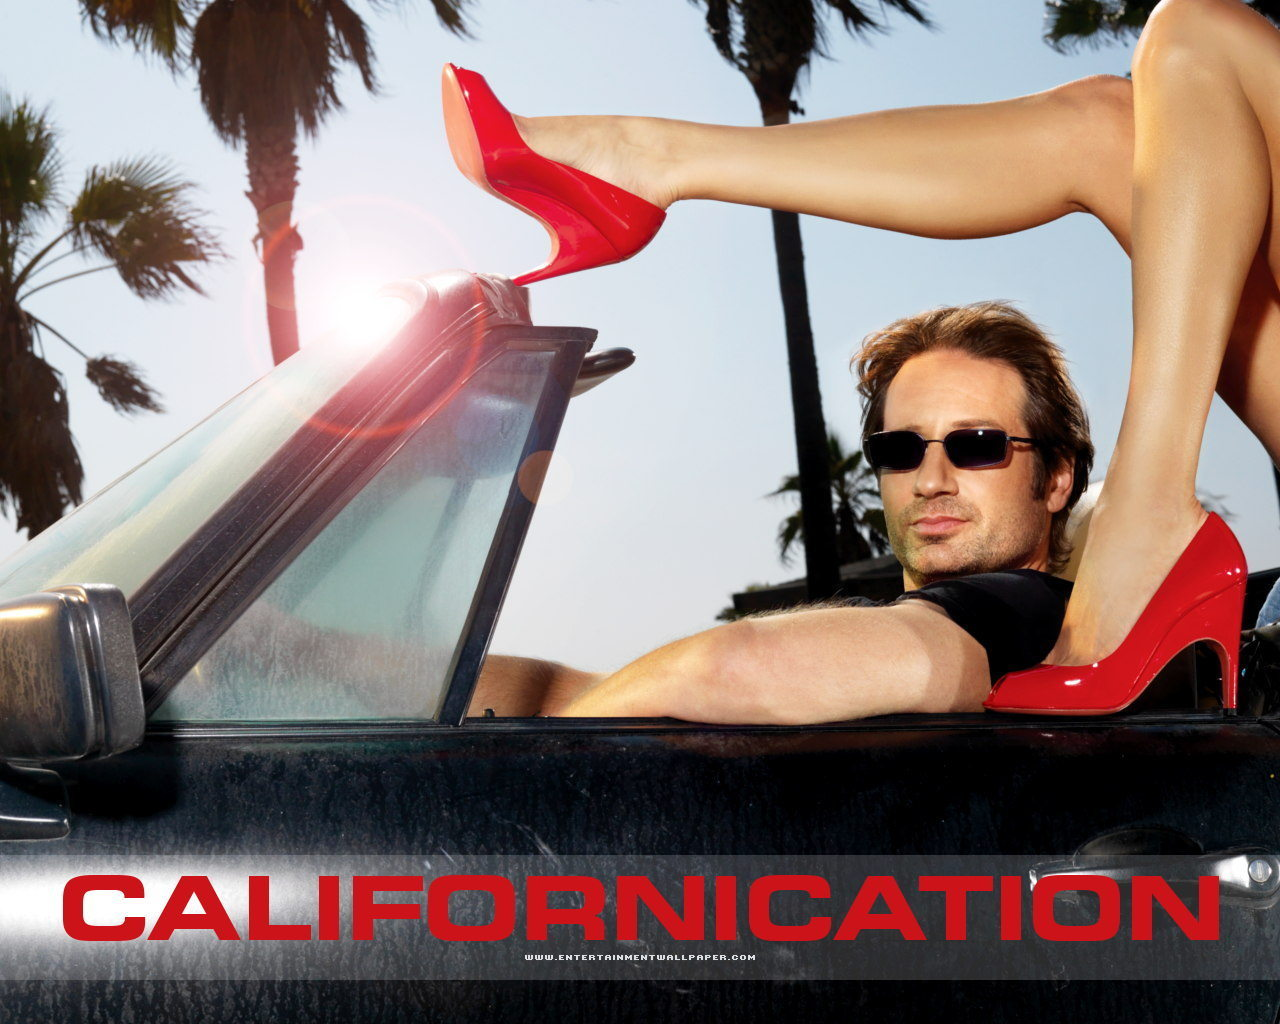 Californication-californication-2953080-1280-1024.jpg